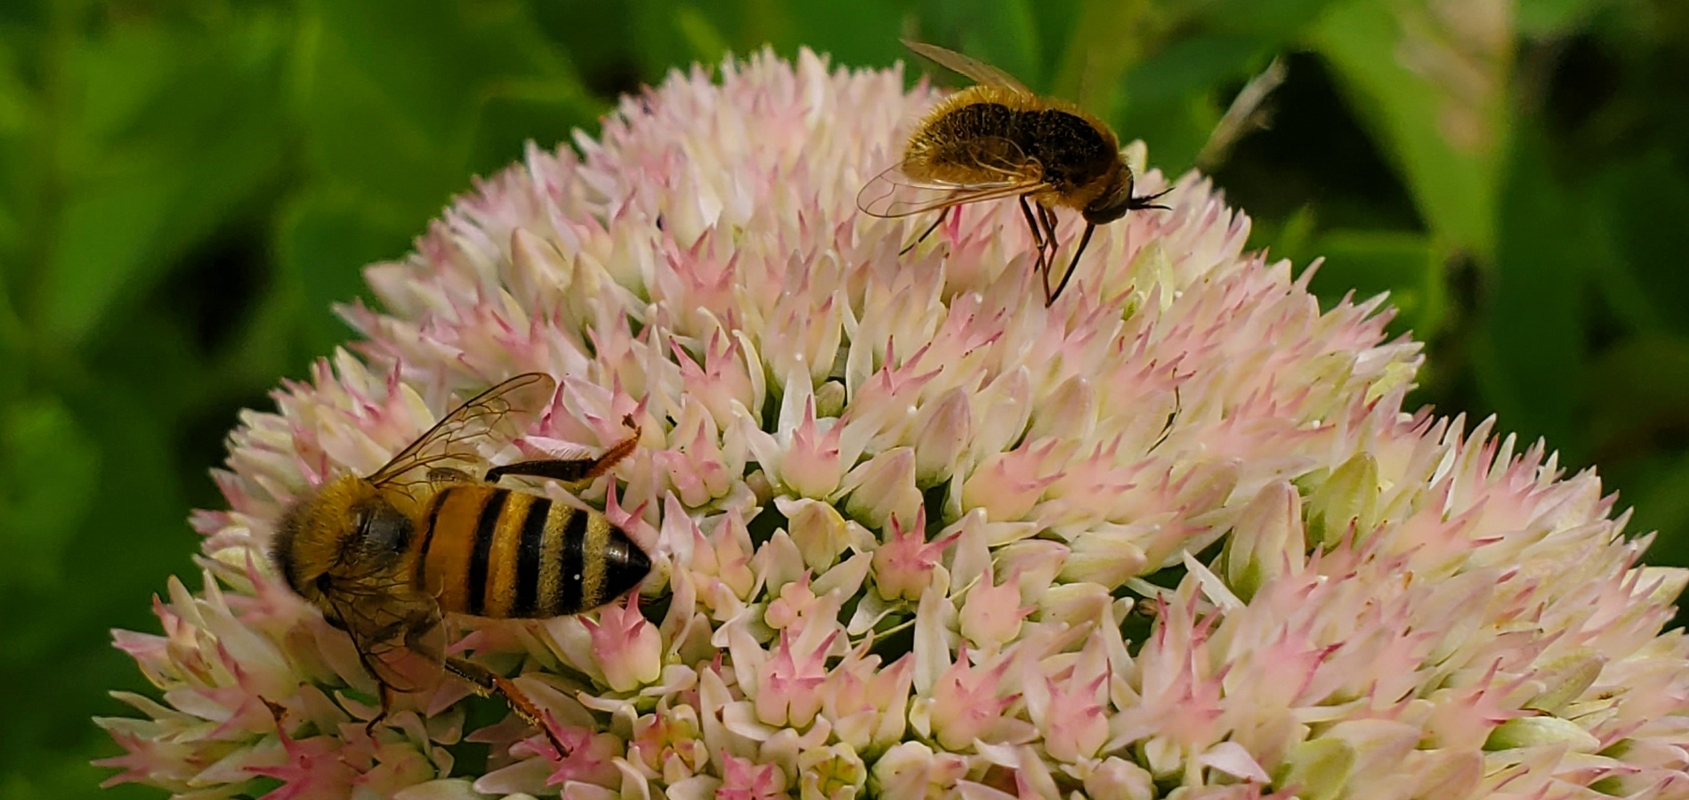 The Greater Bee-Fly